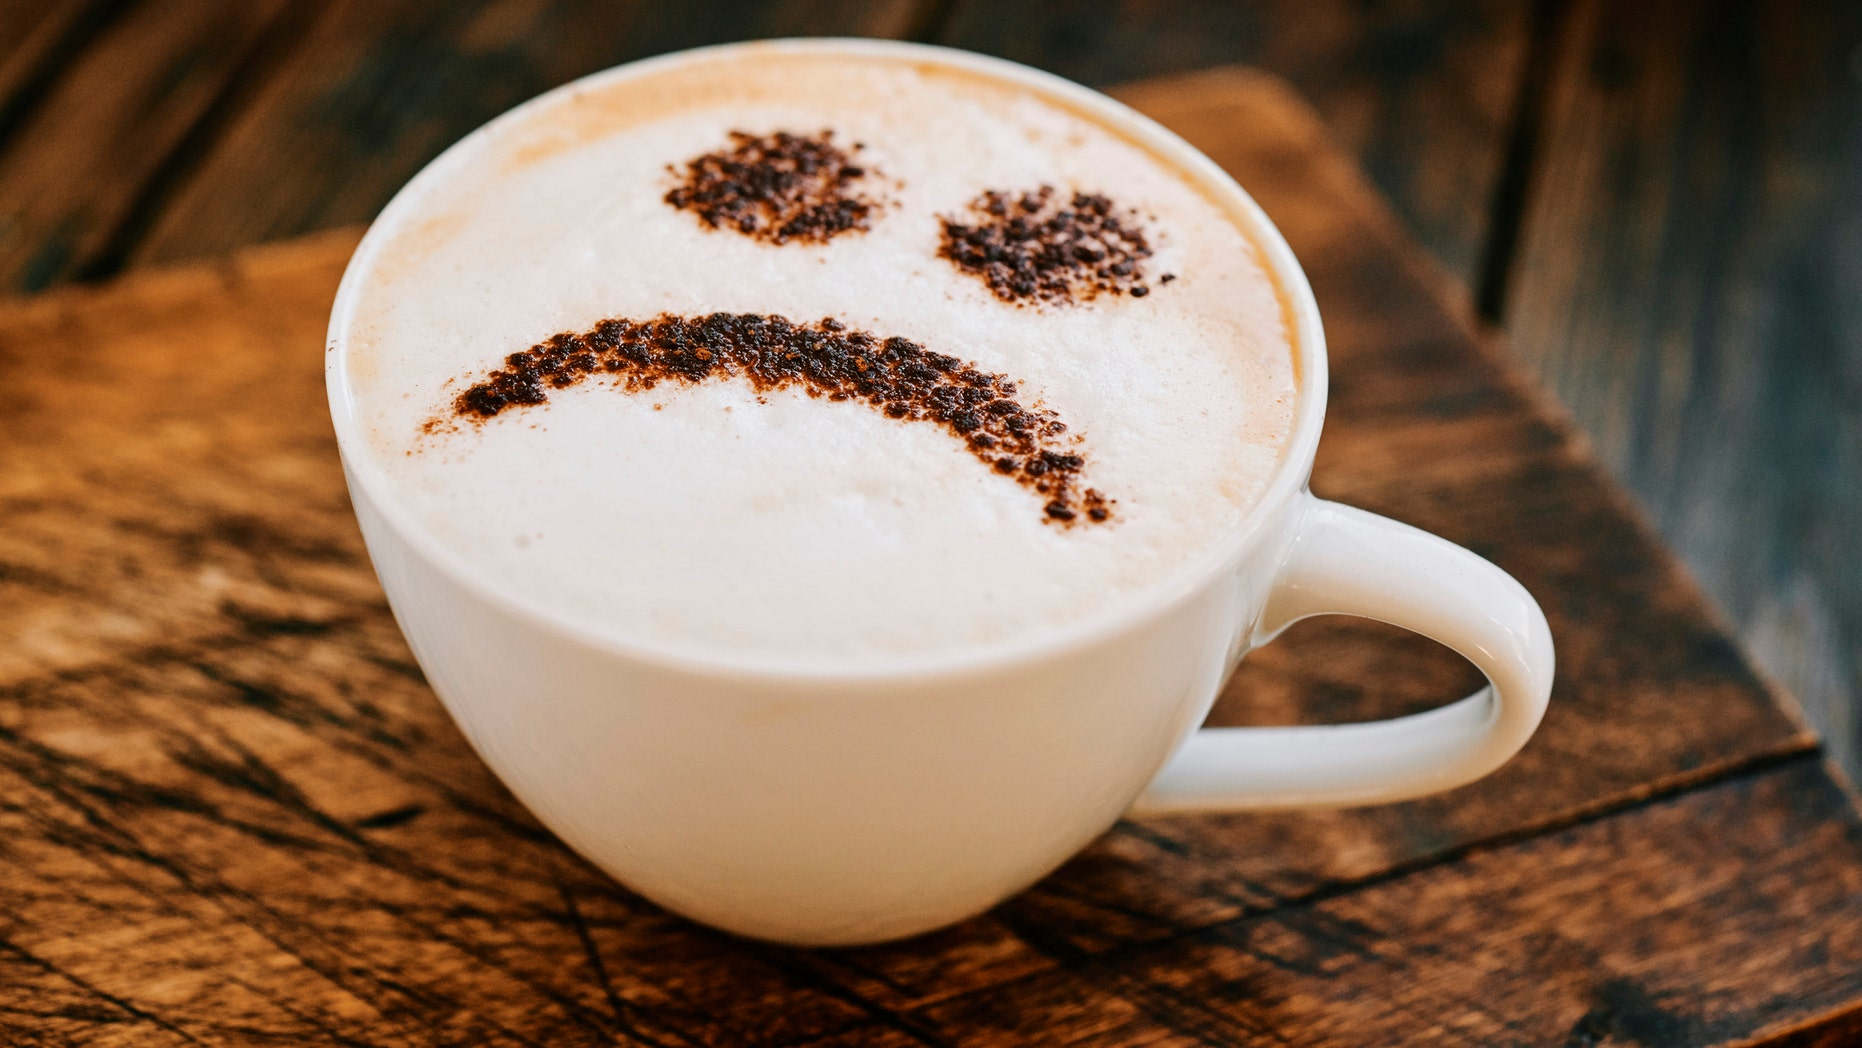 Too much coffee may increase risk of heart disease